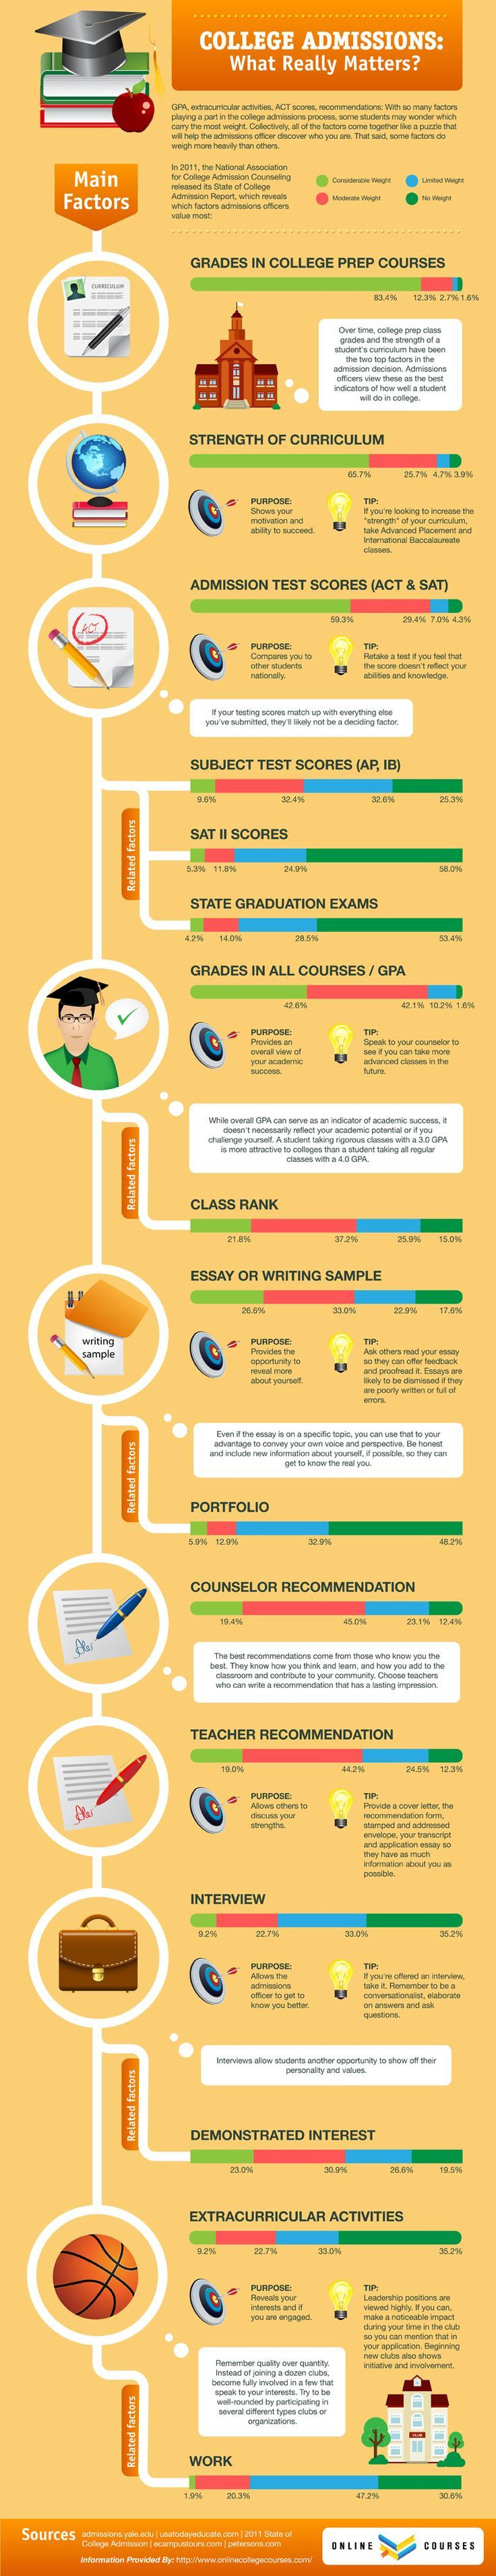 best ideas about essay structure essay writing 30 good student class president slogans